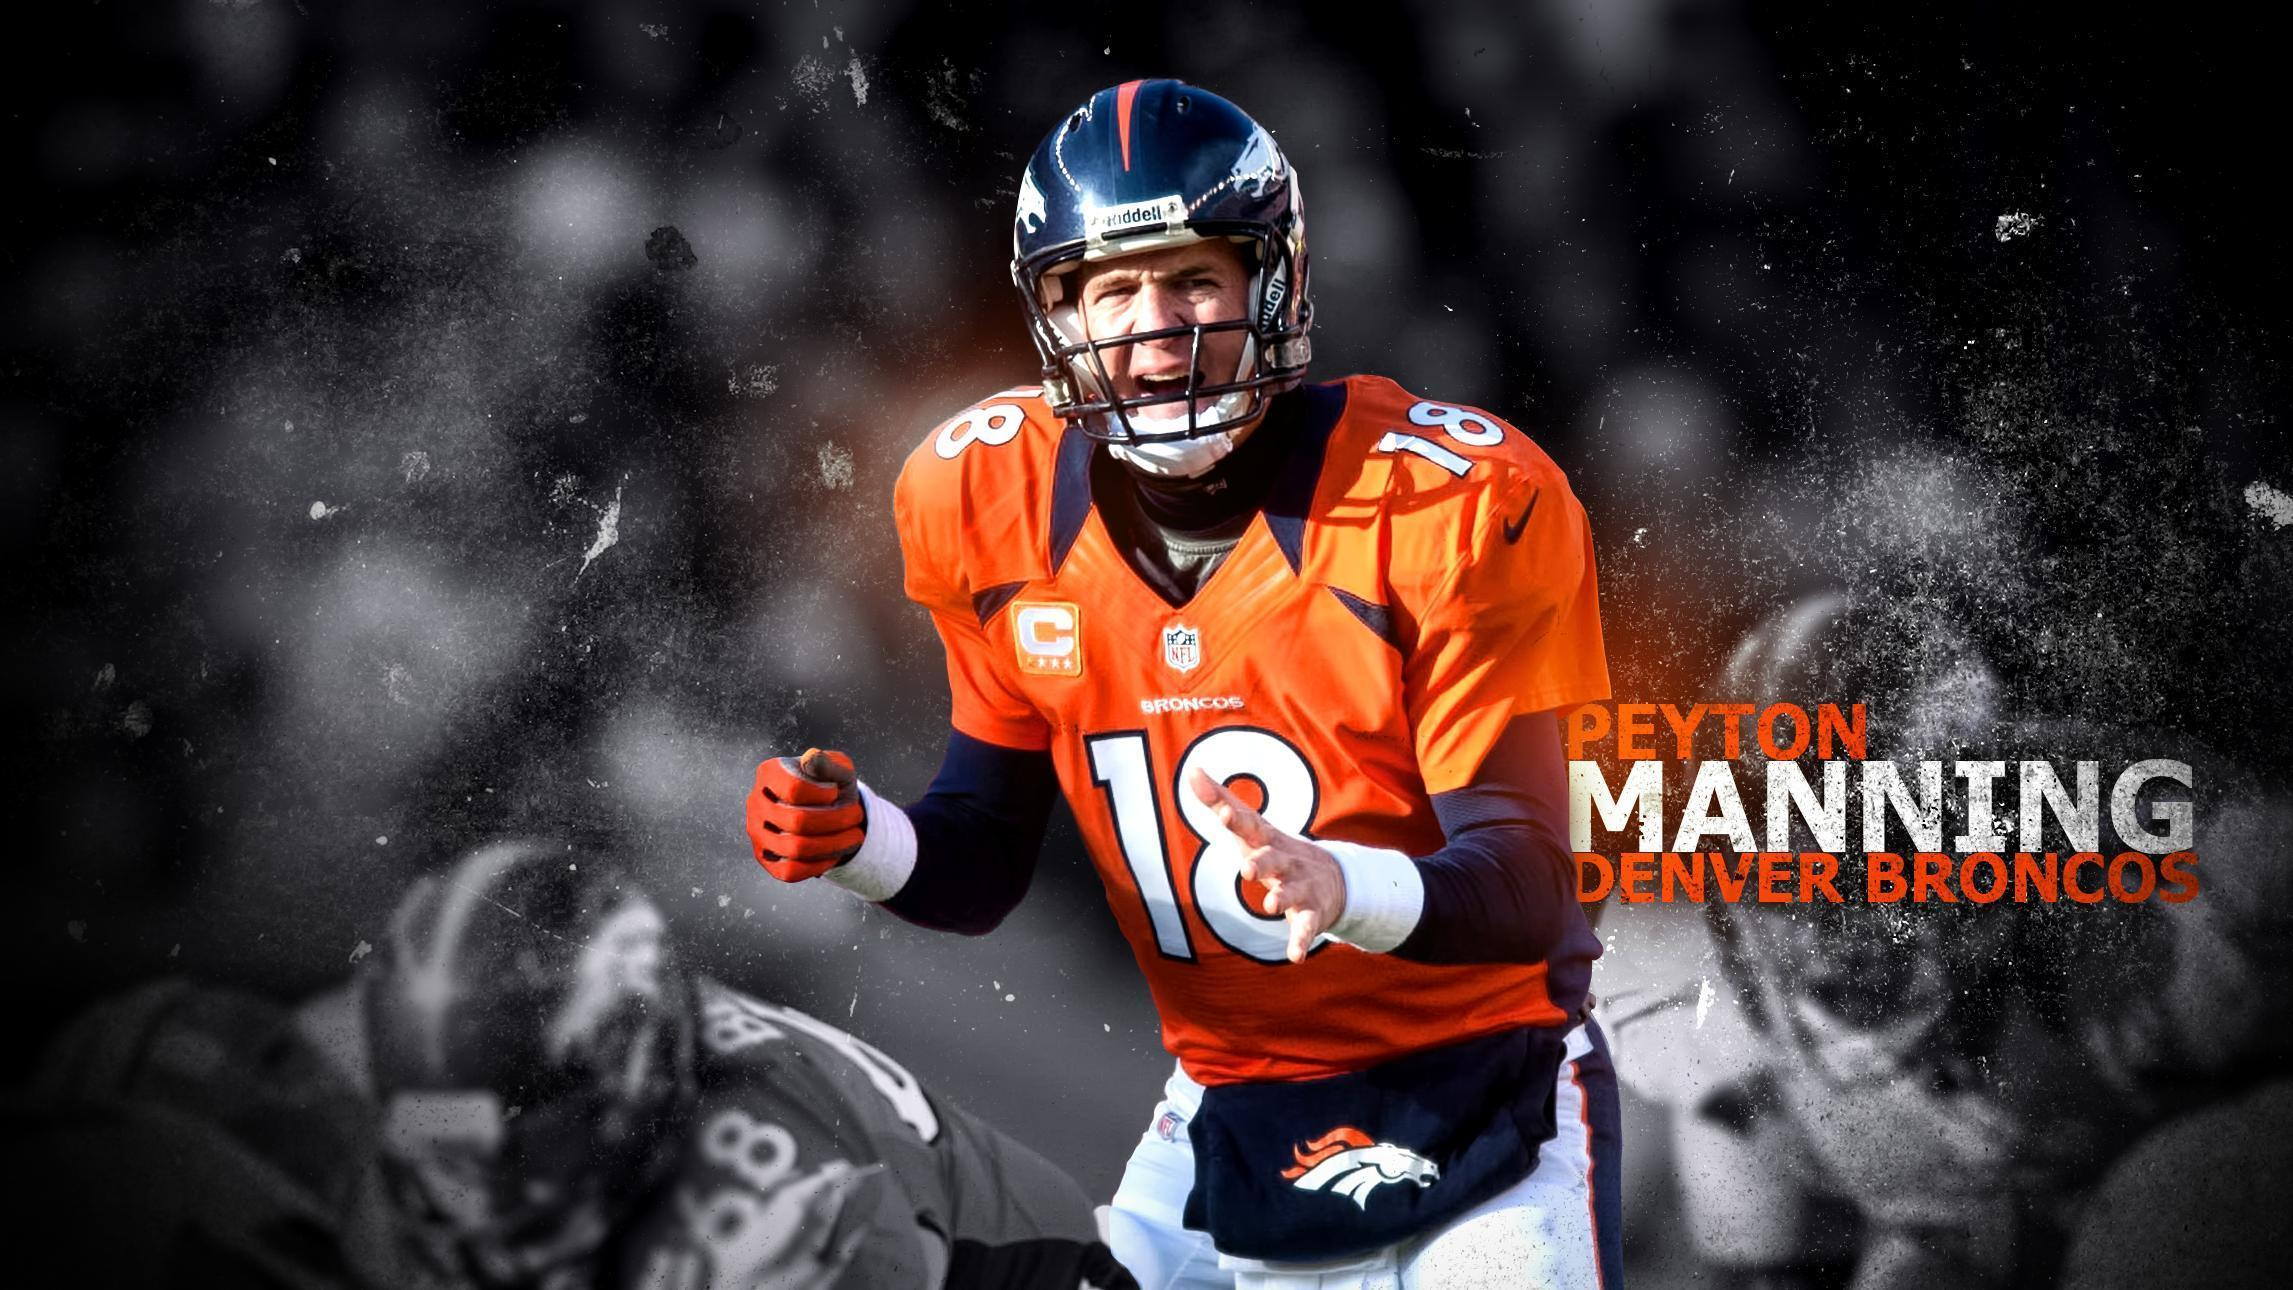 peyton manning wallpapers wallpaper cave